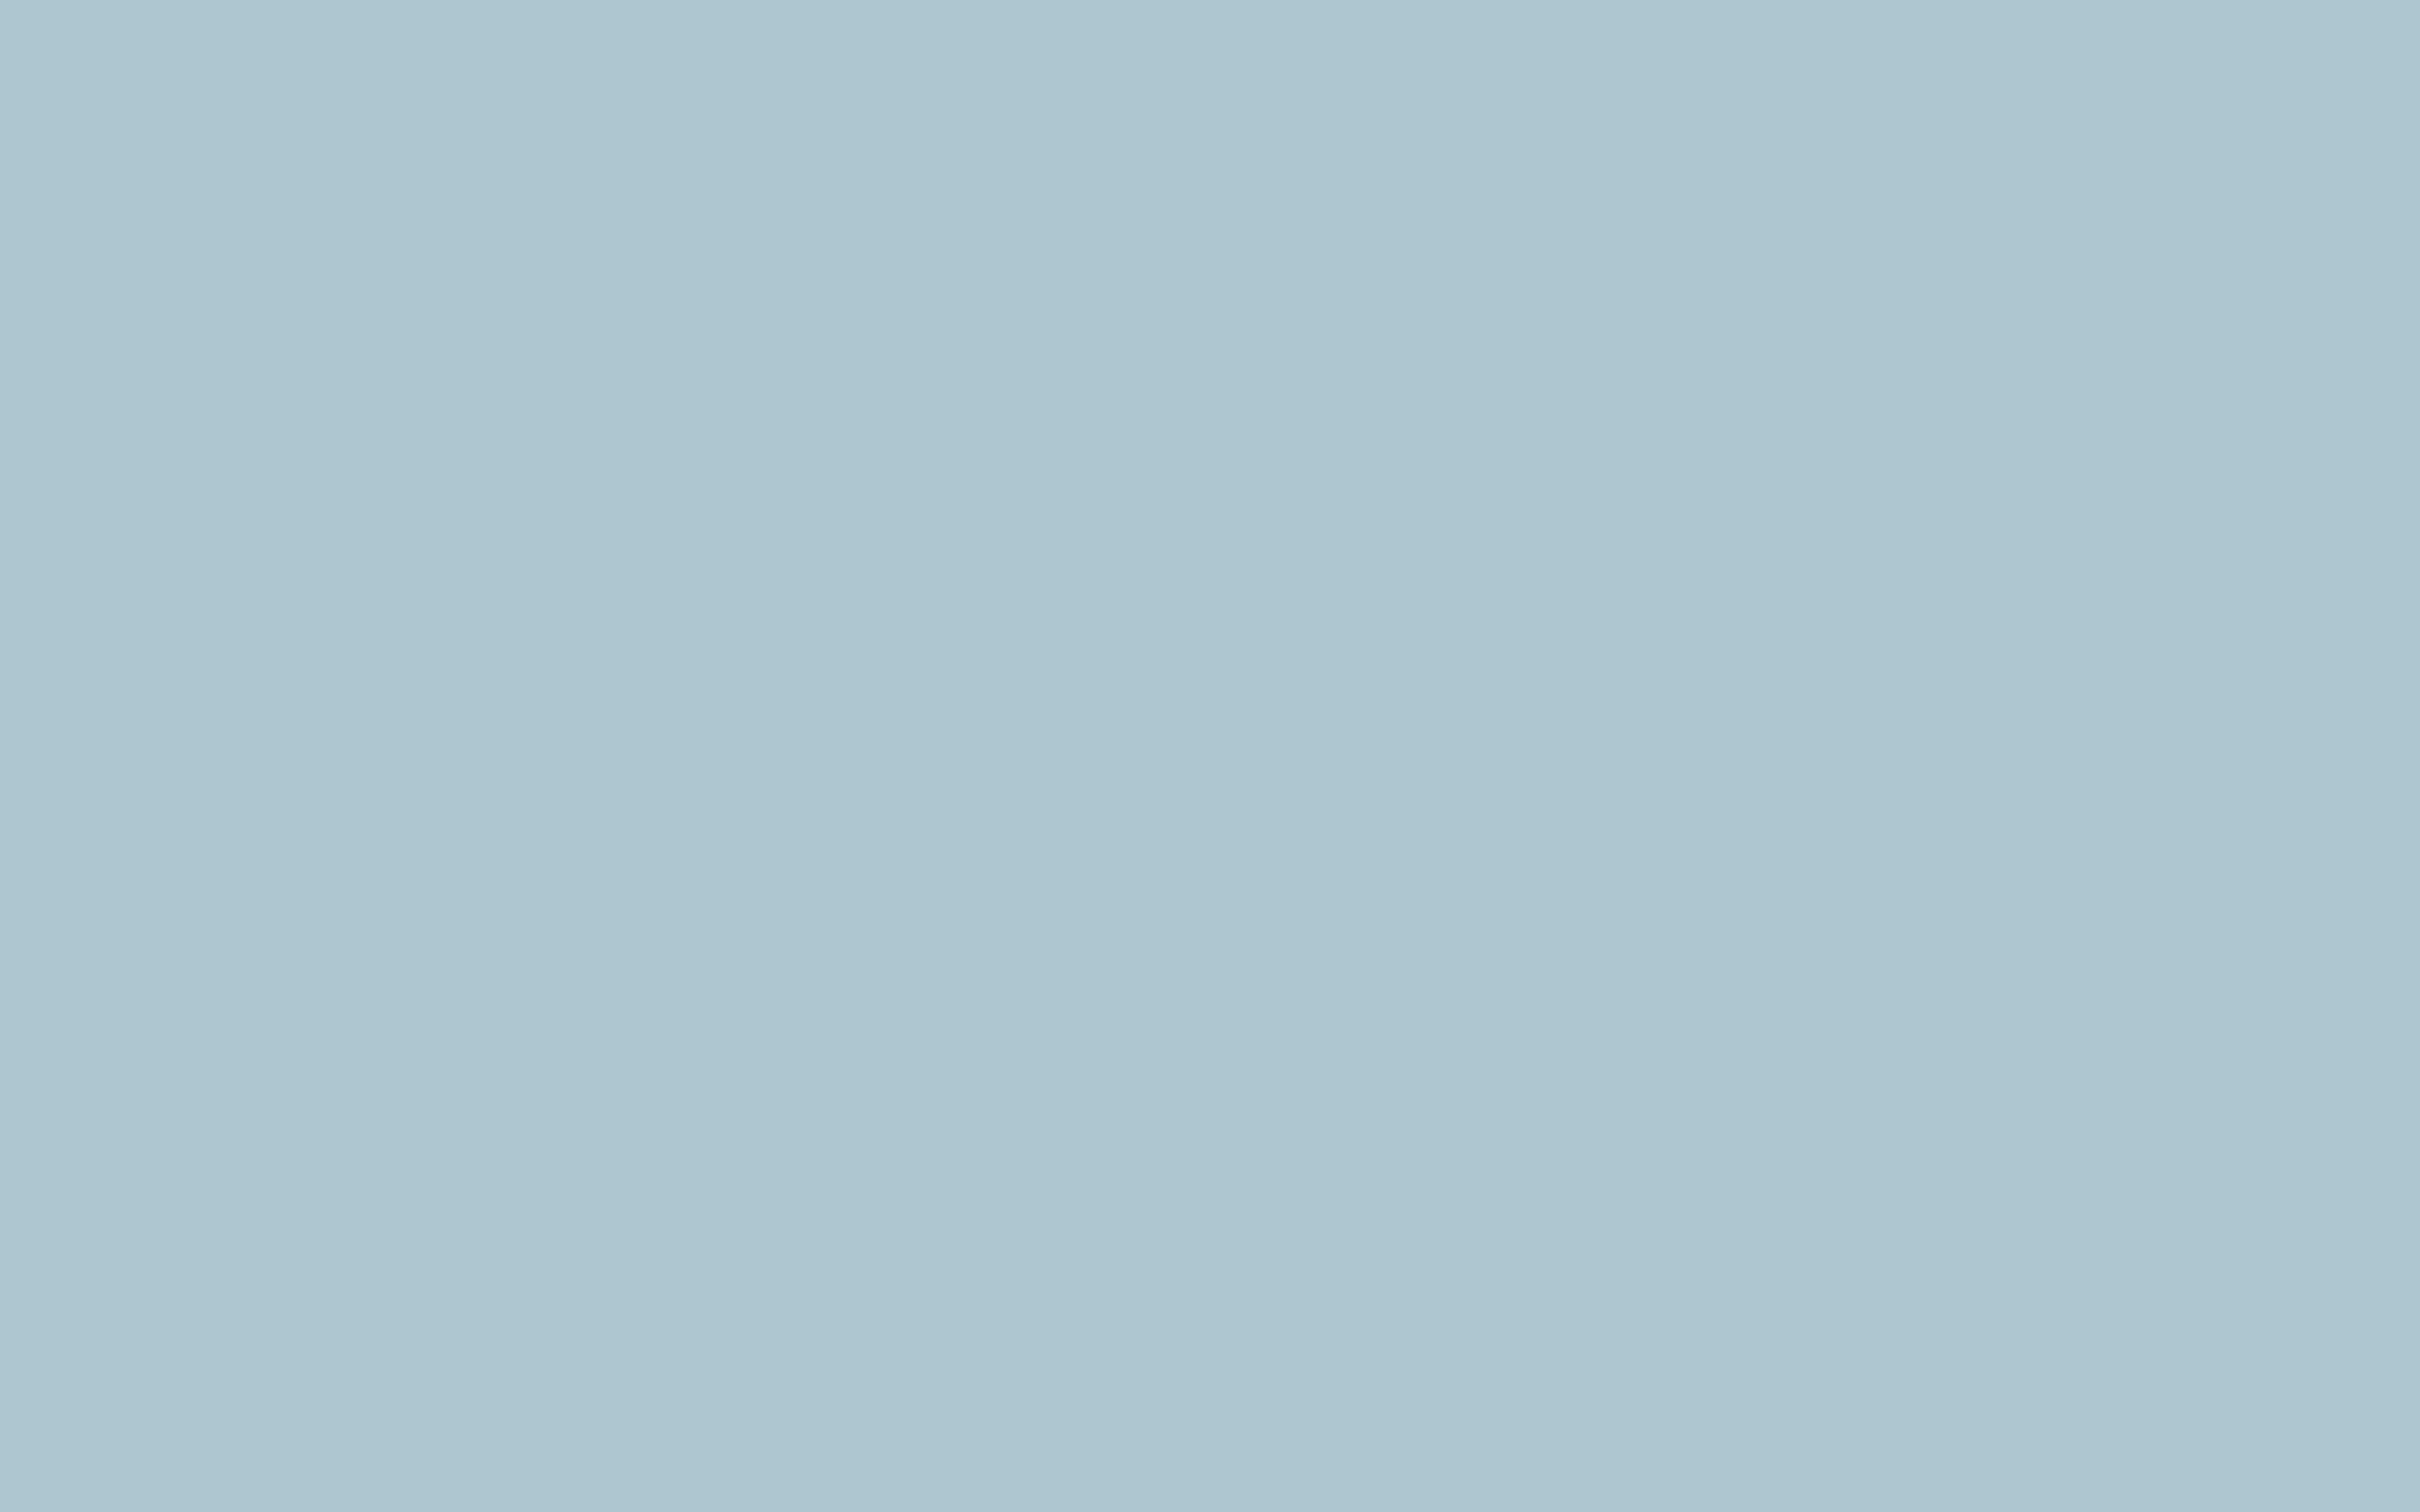 2880x1800 Pastel Blue Solid Color Background